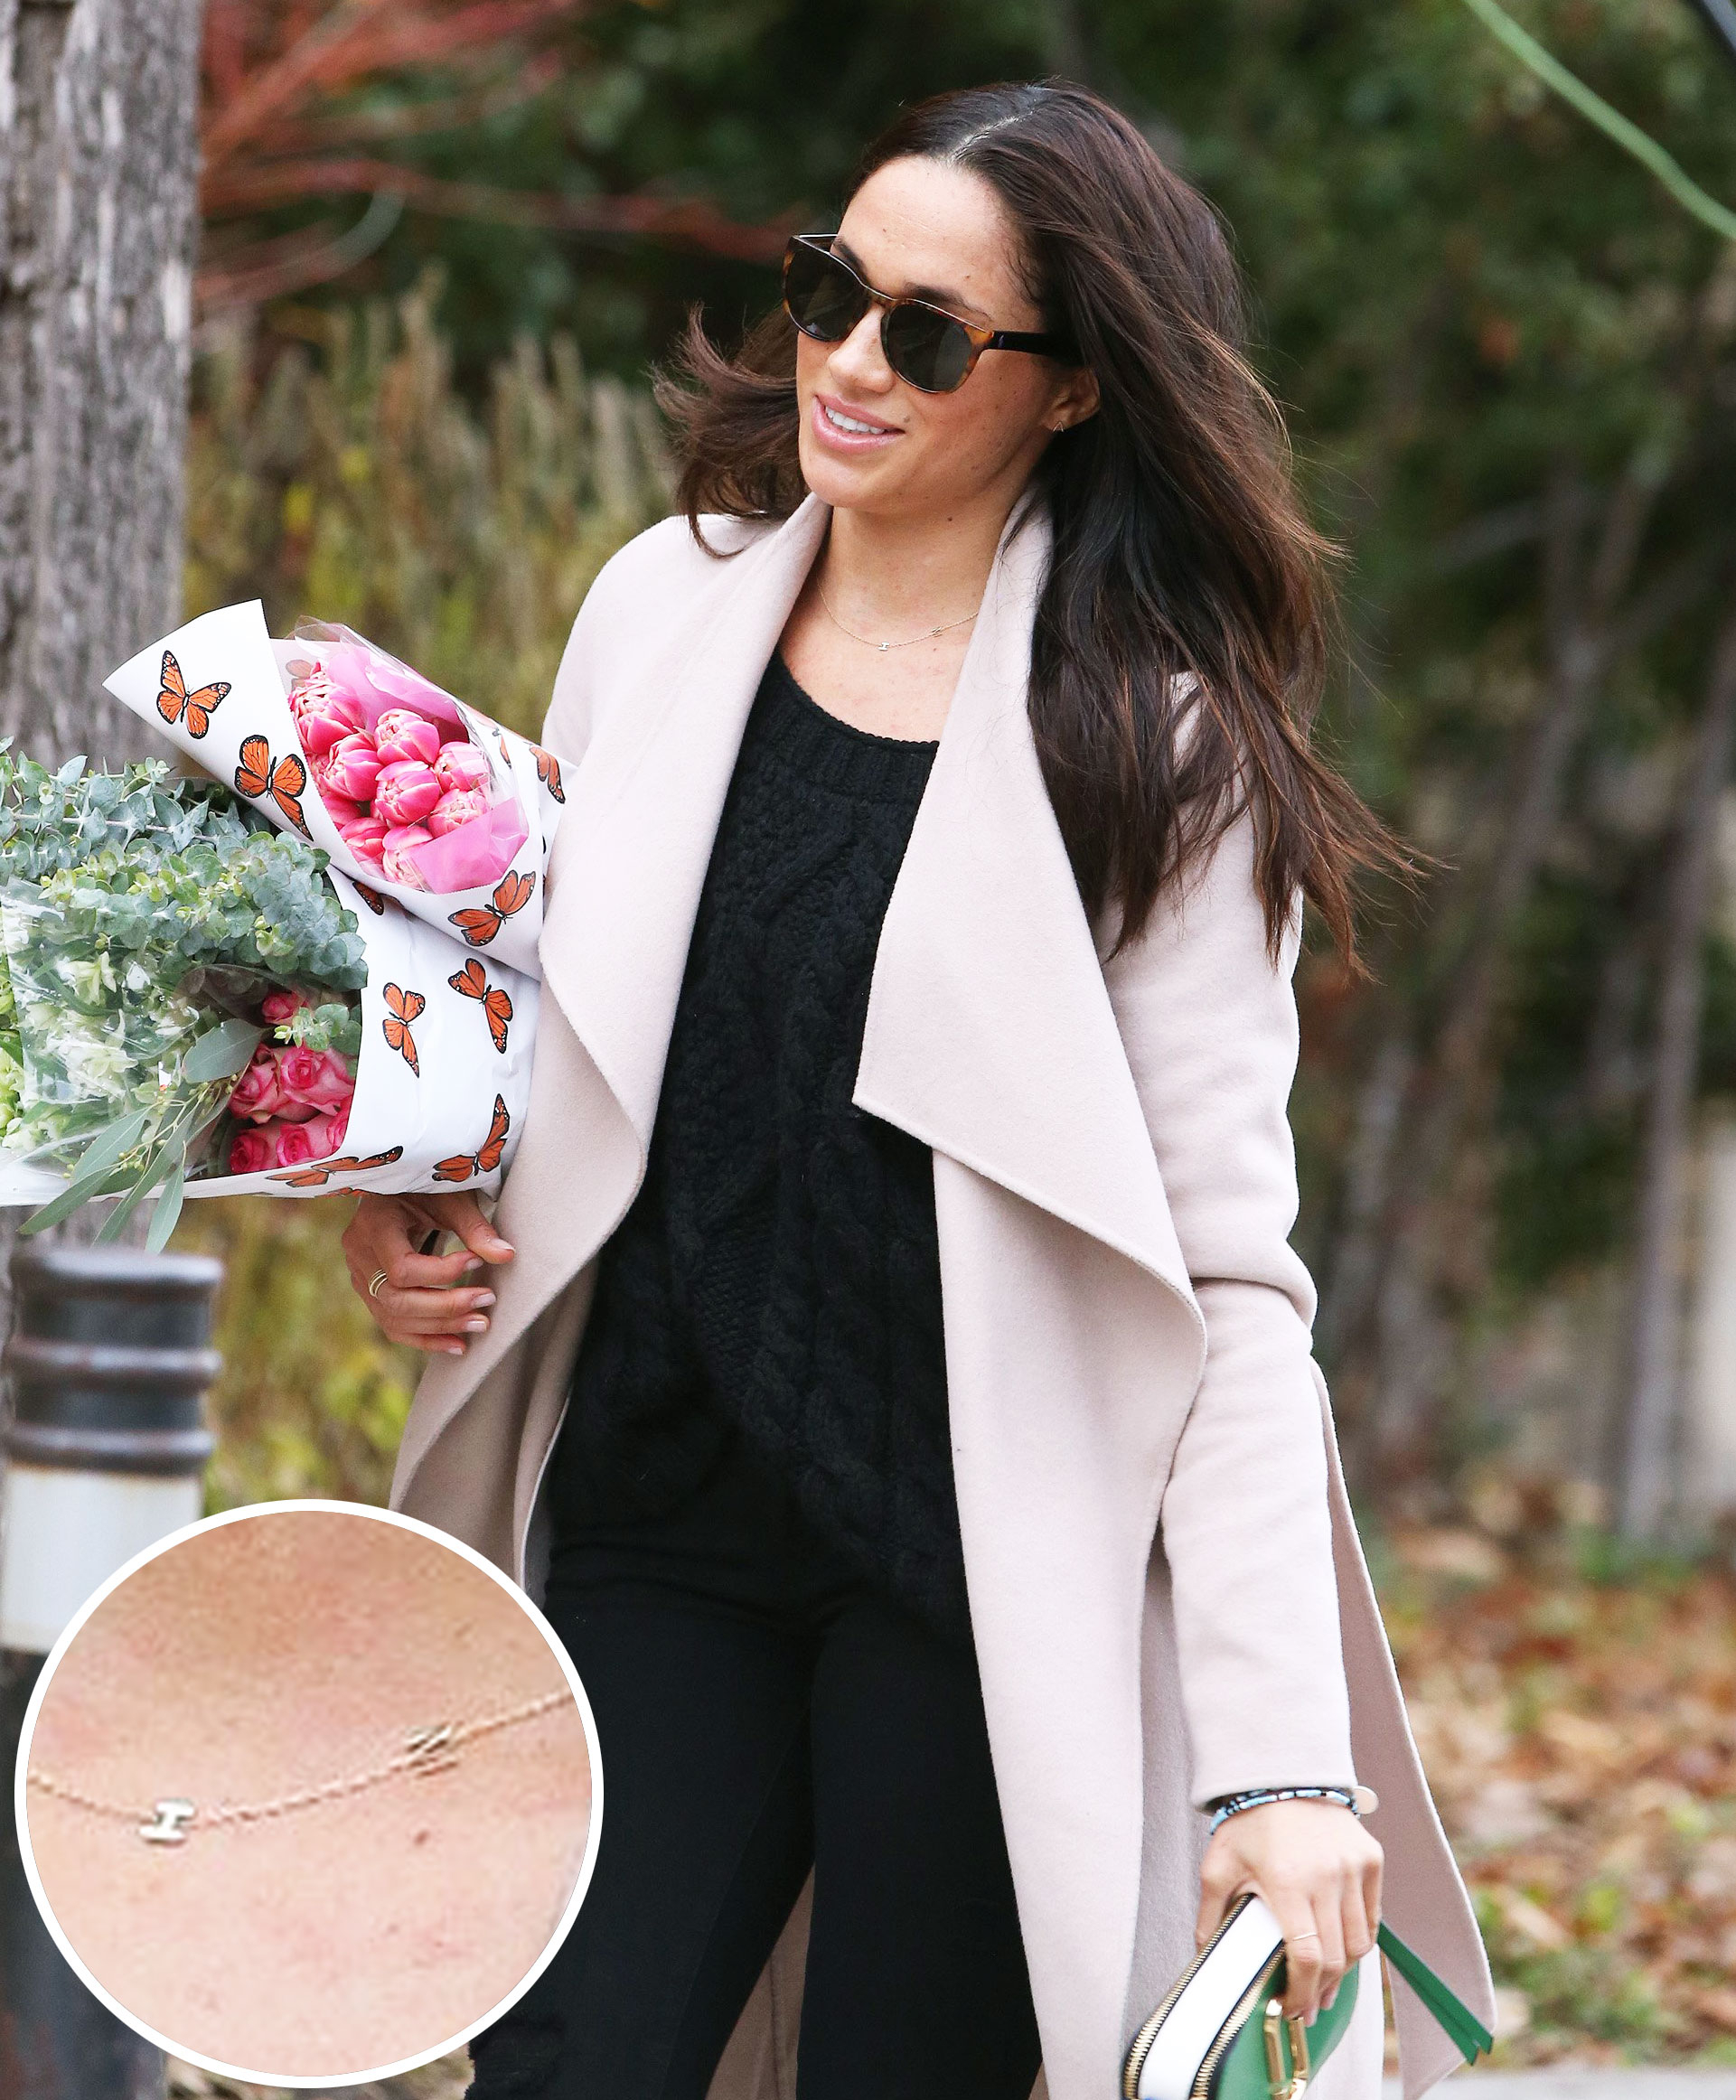 Meghan Markle Wears Personalized Necklace For Prince Harry